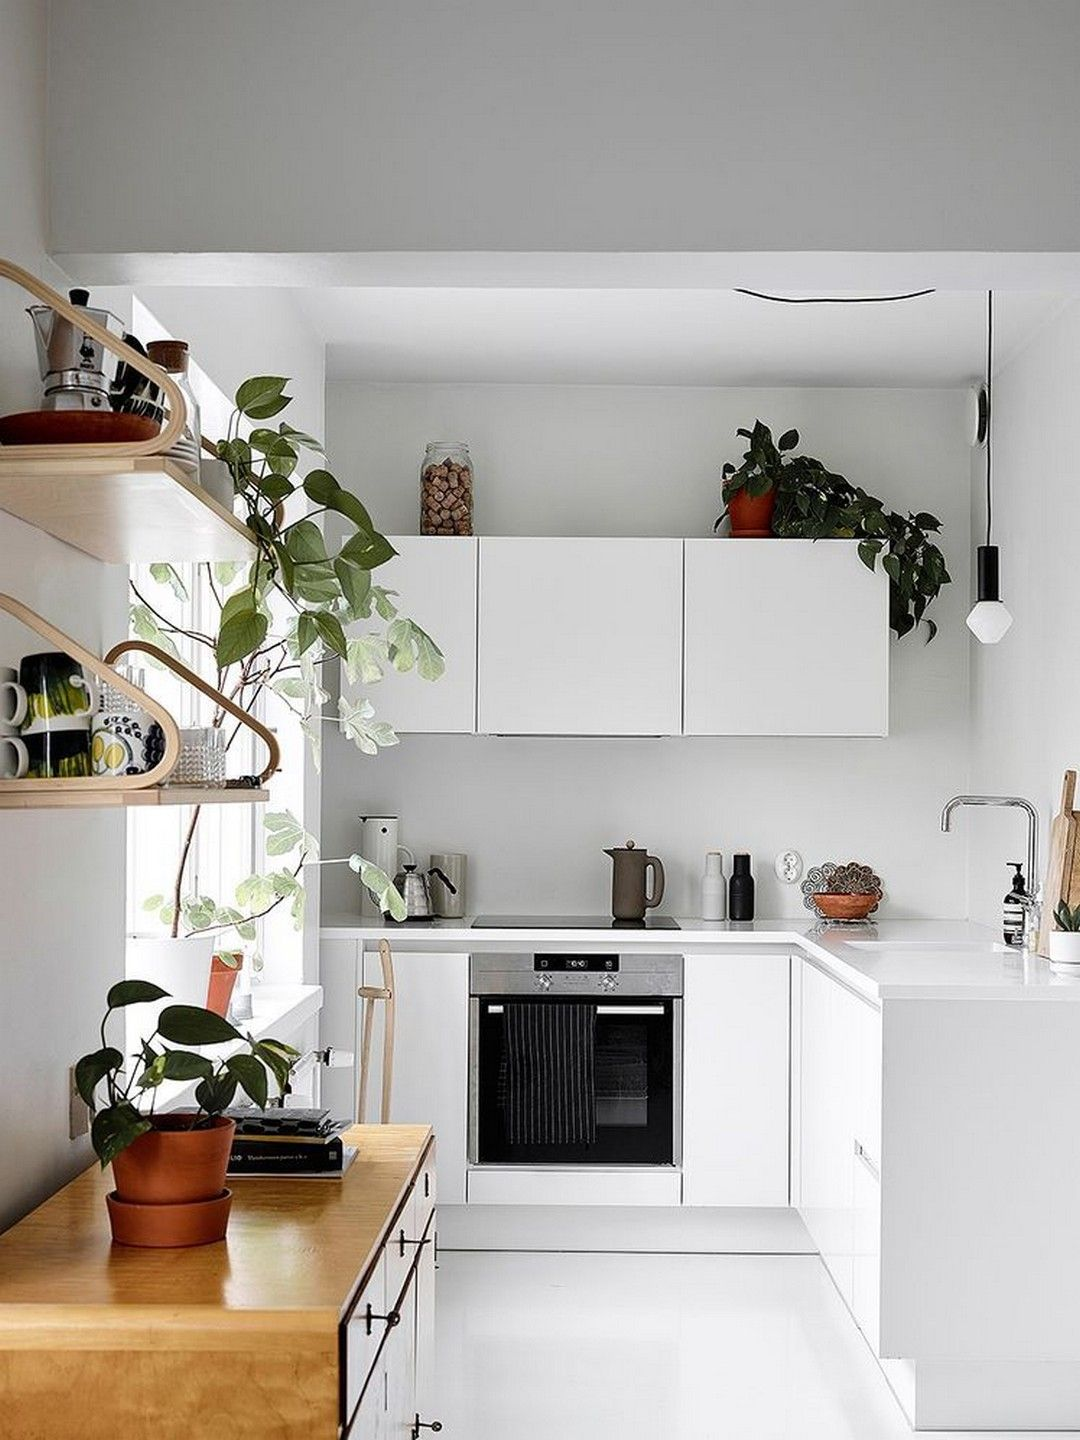 Epic Small Kitchen Hacks For Your Household Kitchen Design Small